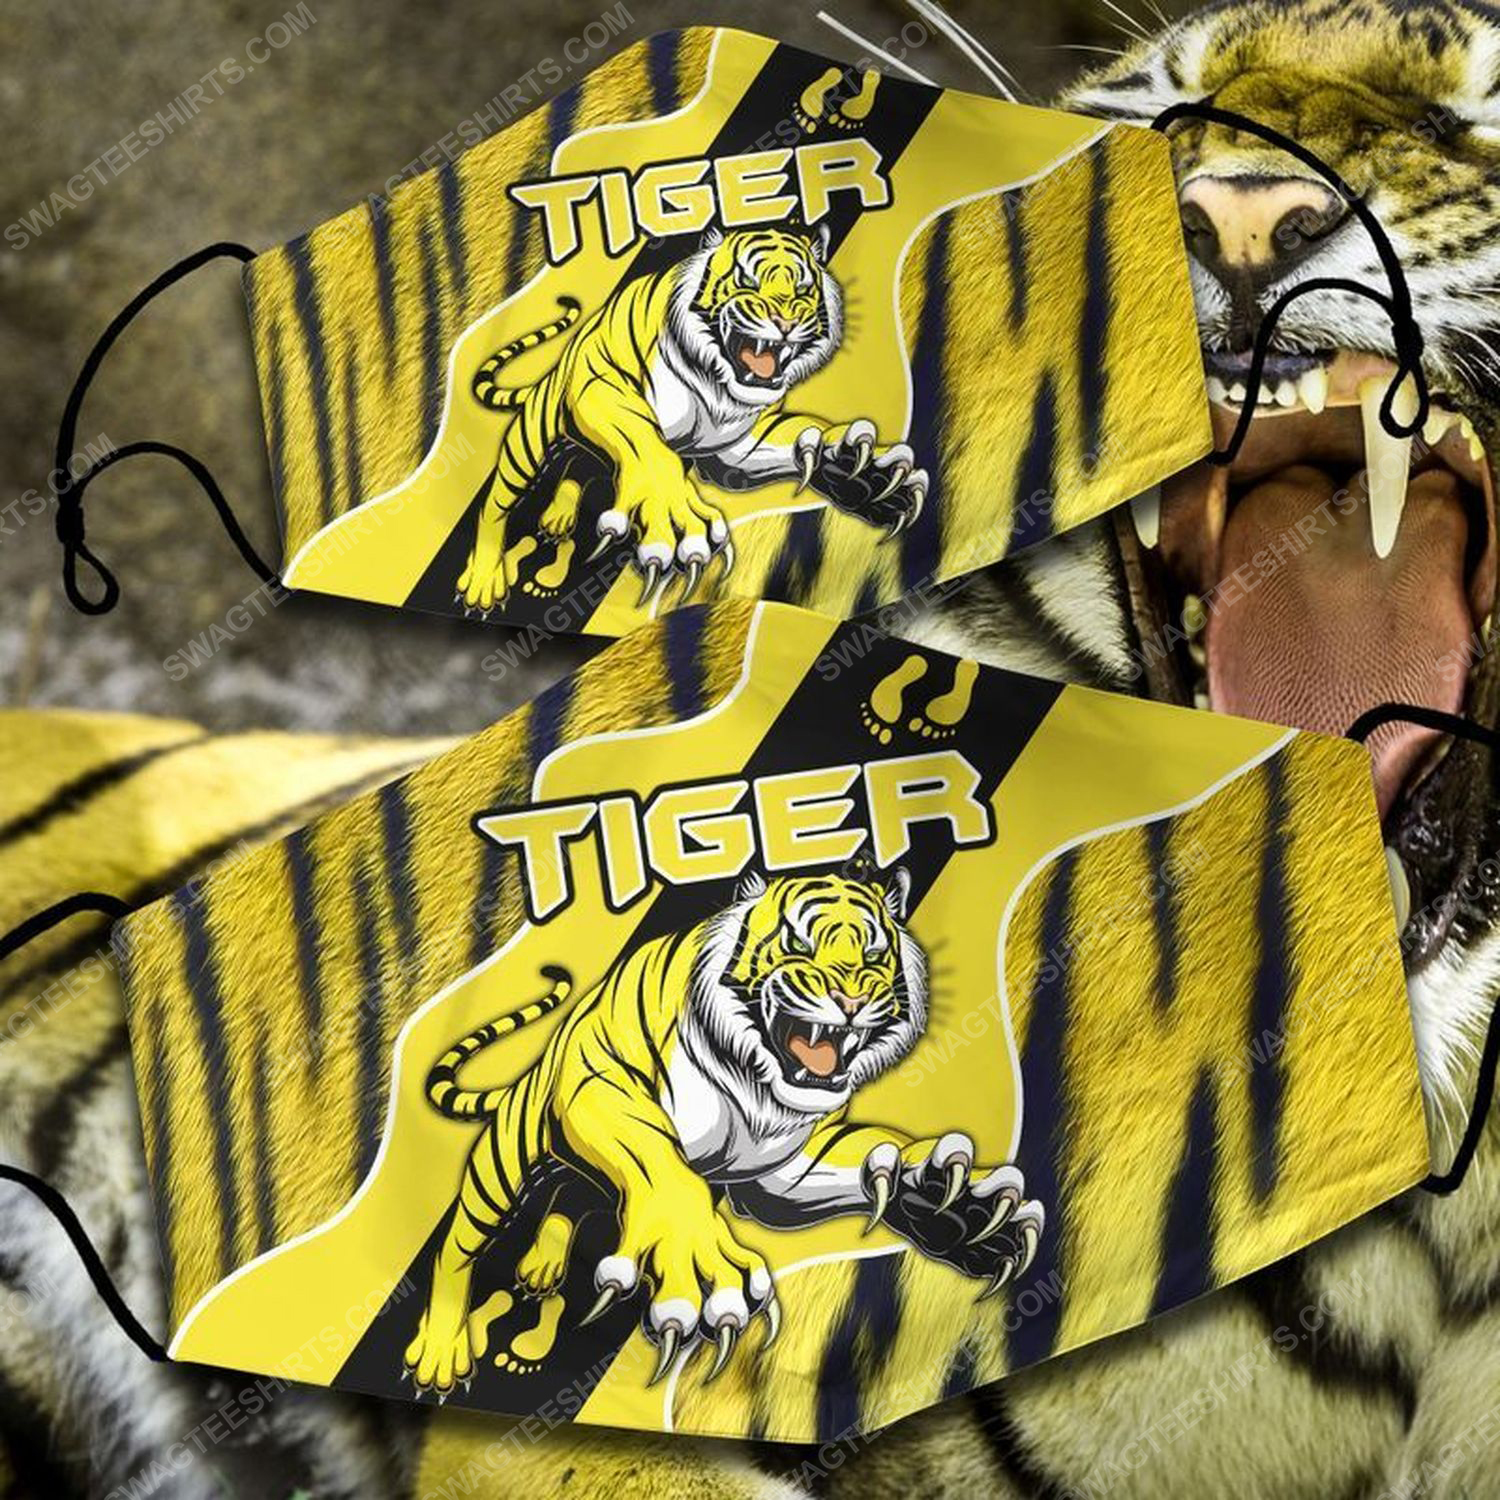 Football club richmond tigers all over print face mask